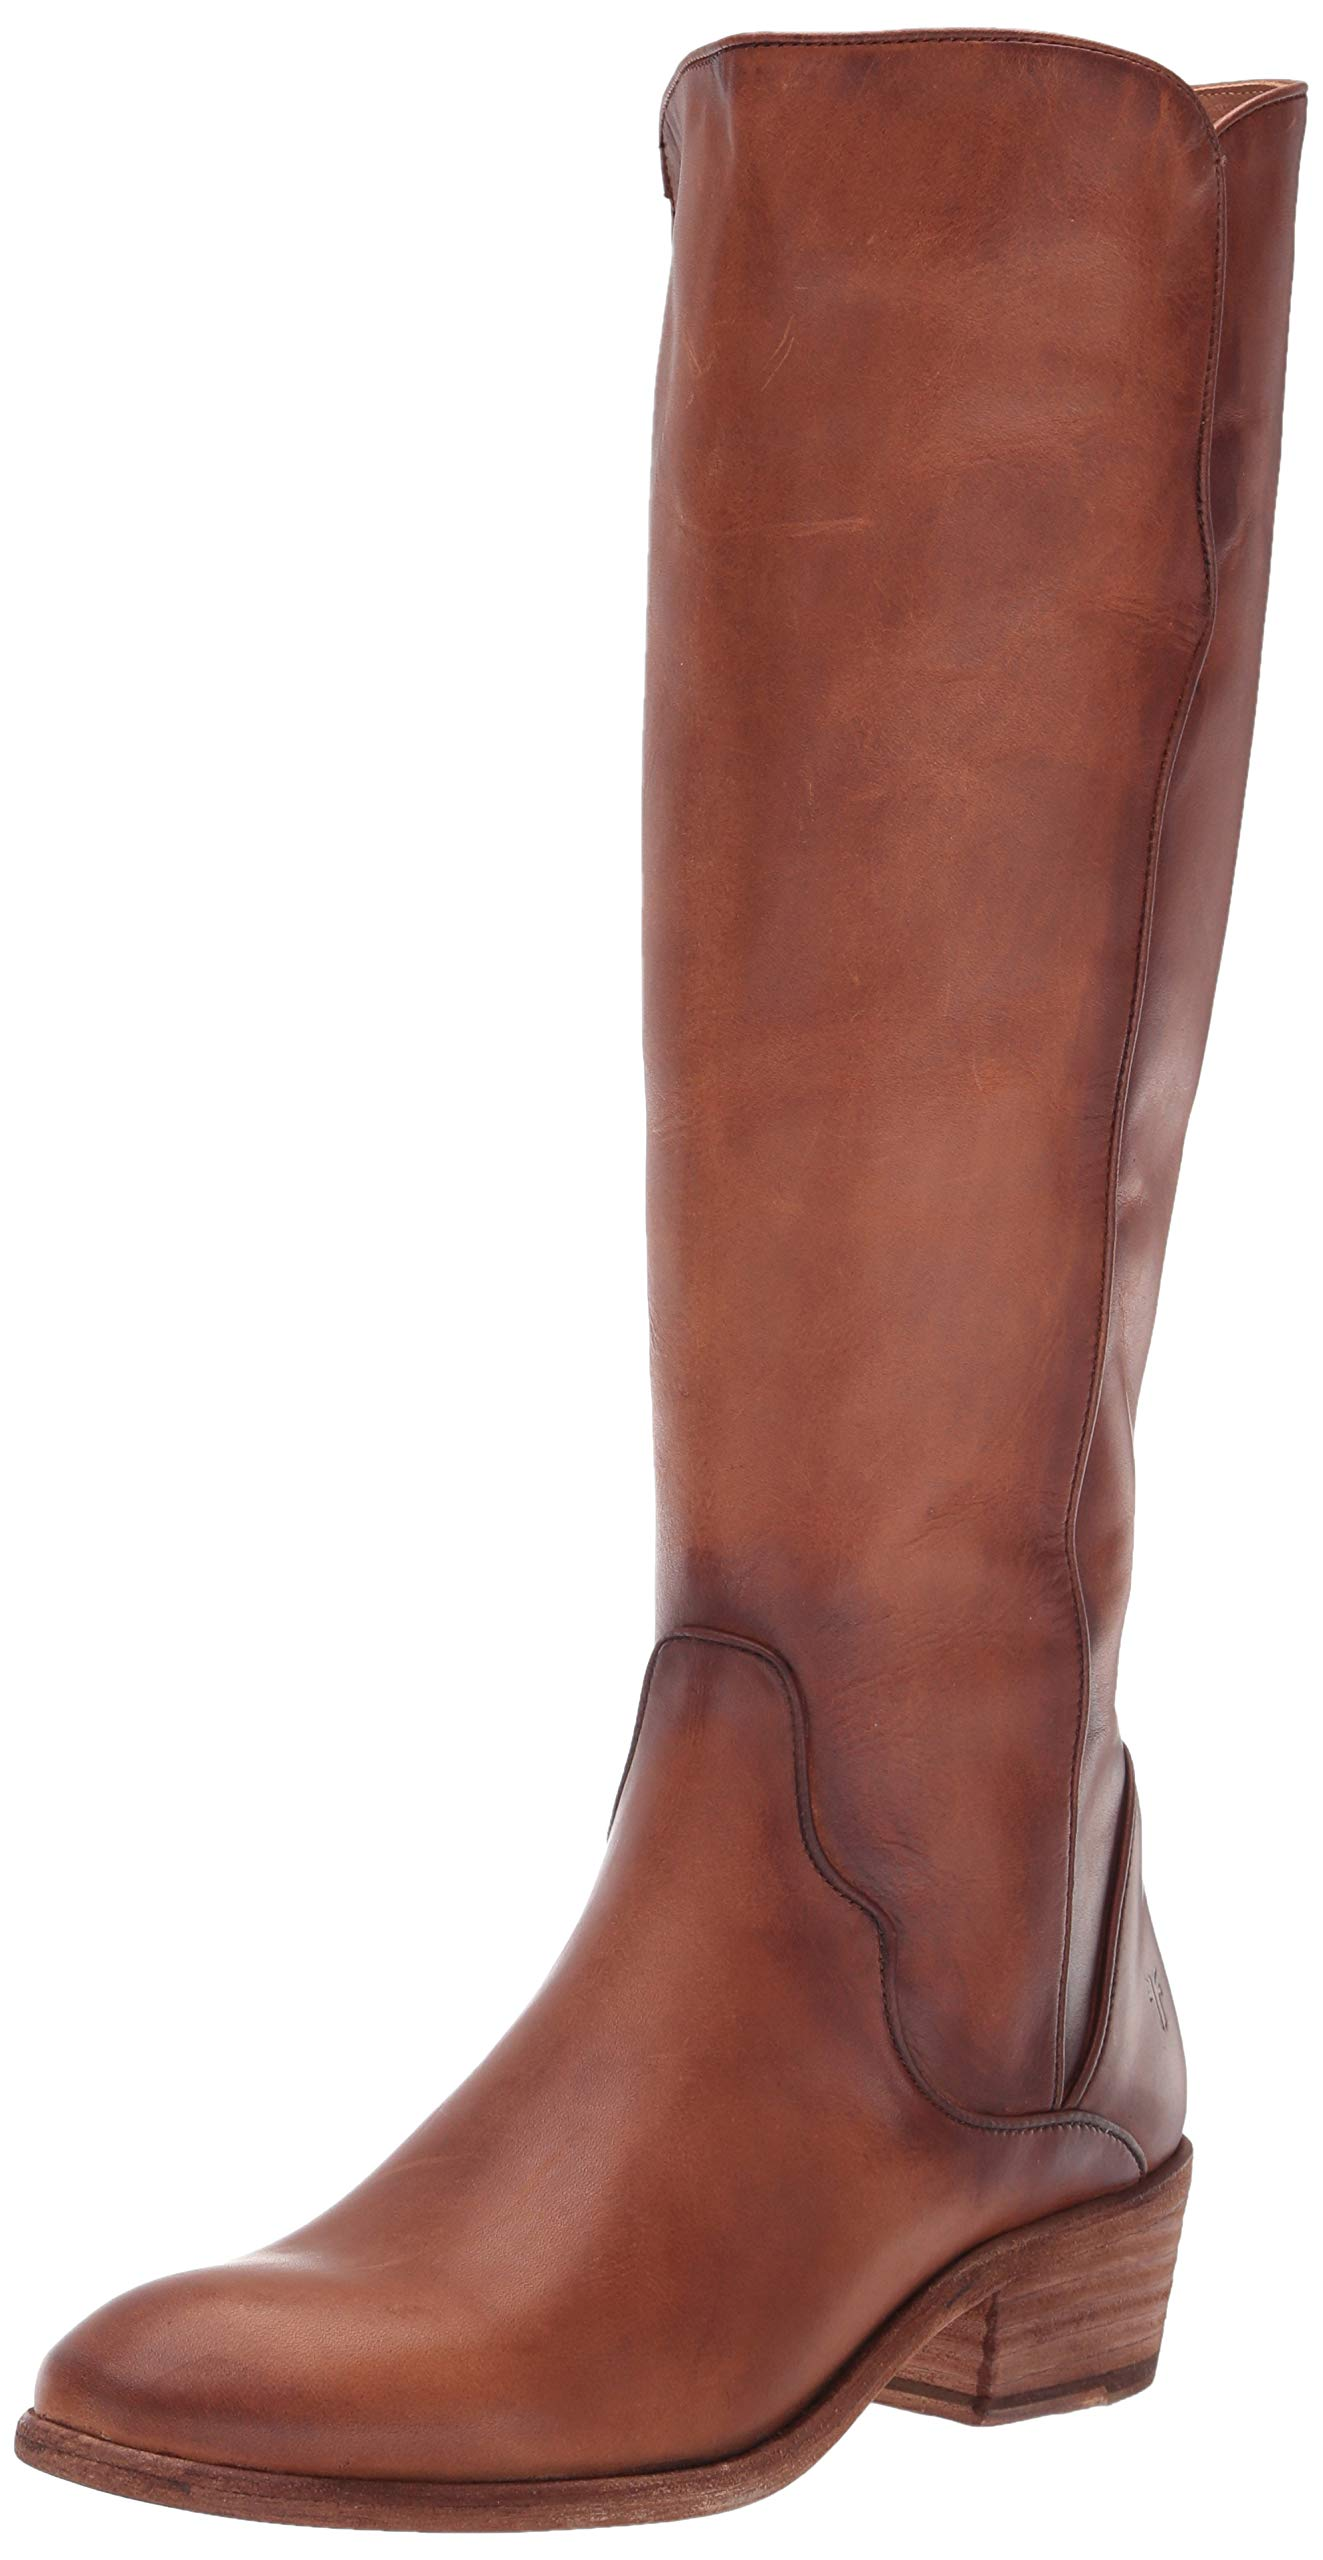 FRYE Women's Carson Piping Tall Knee High Boot, Caramel, 9.5 M US by FRYE